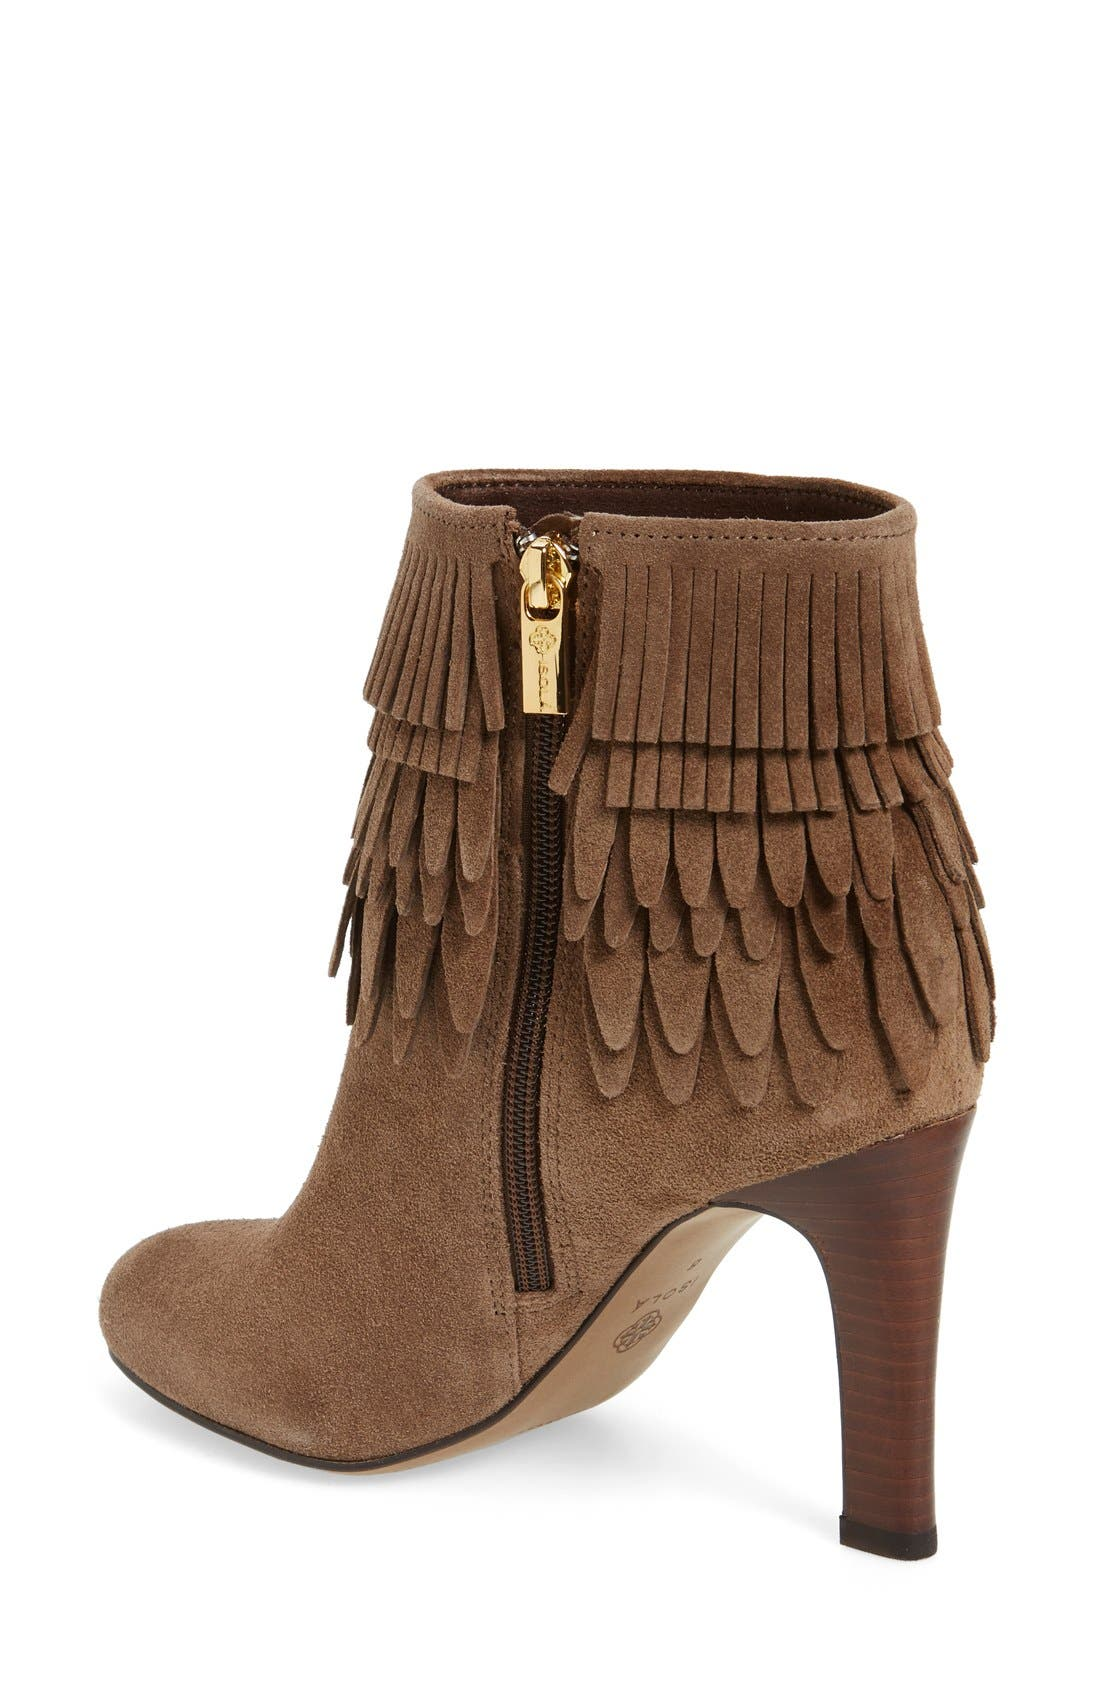 'Layton' Fringe Bootie,                             Alternate thumbnail 2, color,                             Havana Brown Suede